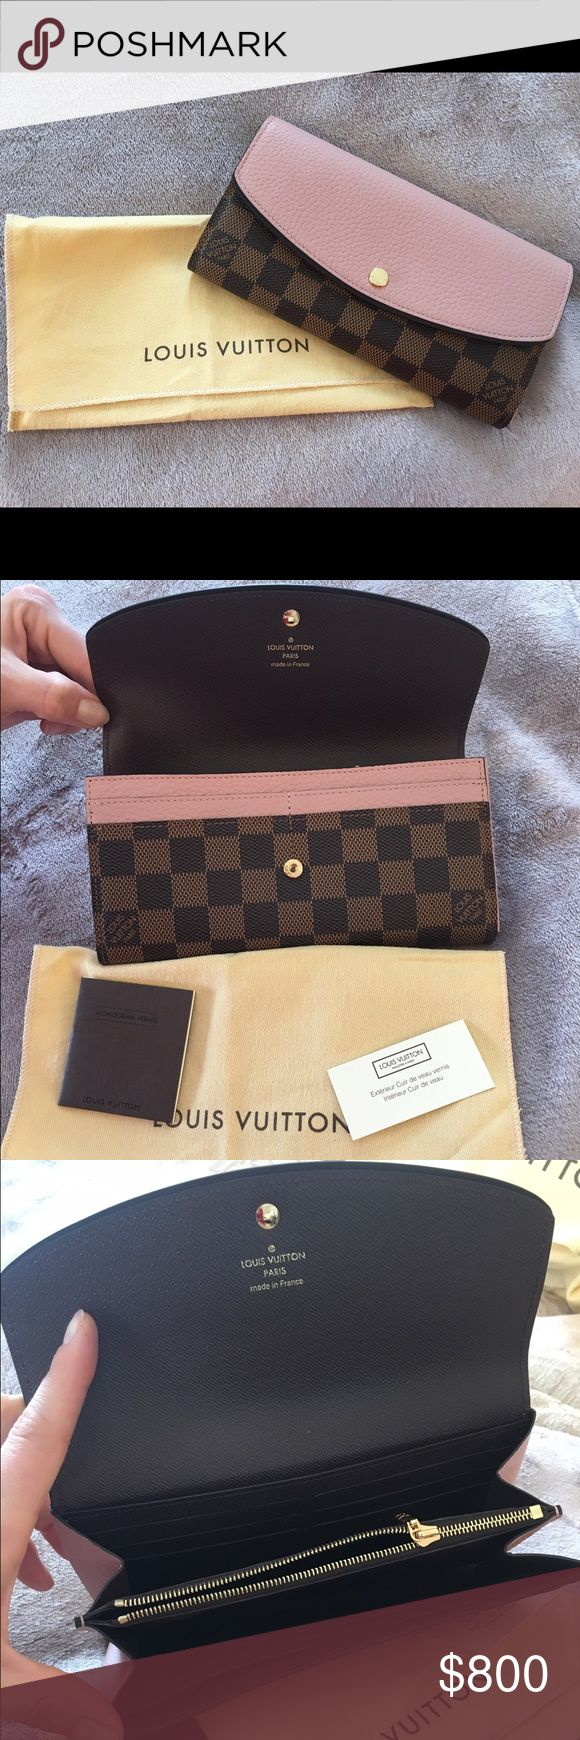 """Louis Vuitton AUTHENTIC Monogram Wallet AUTHENTIC EXCELLENT LIKE NEW CONDITION. NO WEAR or STAINS. Brown monogram checkered leather material accented with Rose Pink leather gold buttons 16 credit card slots center zipper coin pocket inside of wallet there is a """"hidden"""" back slip pocket. Dust bag and original tags INCLUDED. Fair offers considered via offer button. Thank you cross posted Louis Vuitton Bags Wallets"""